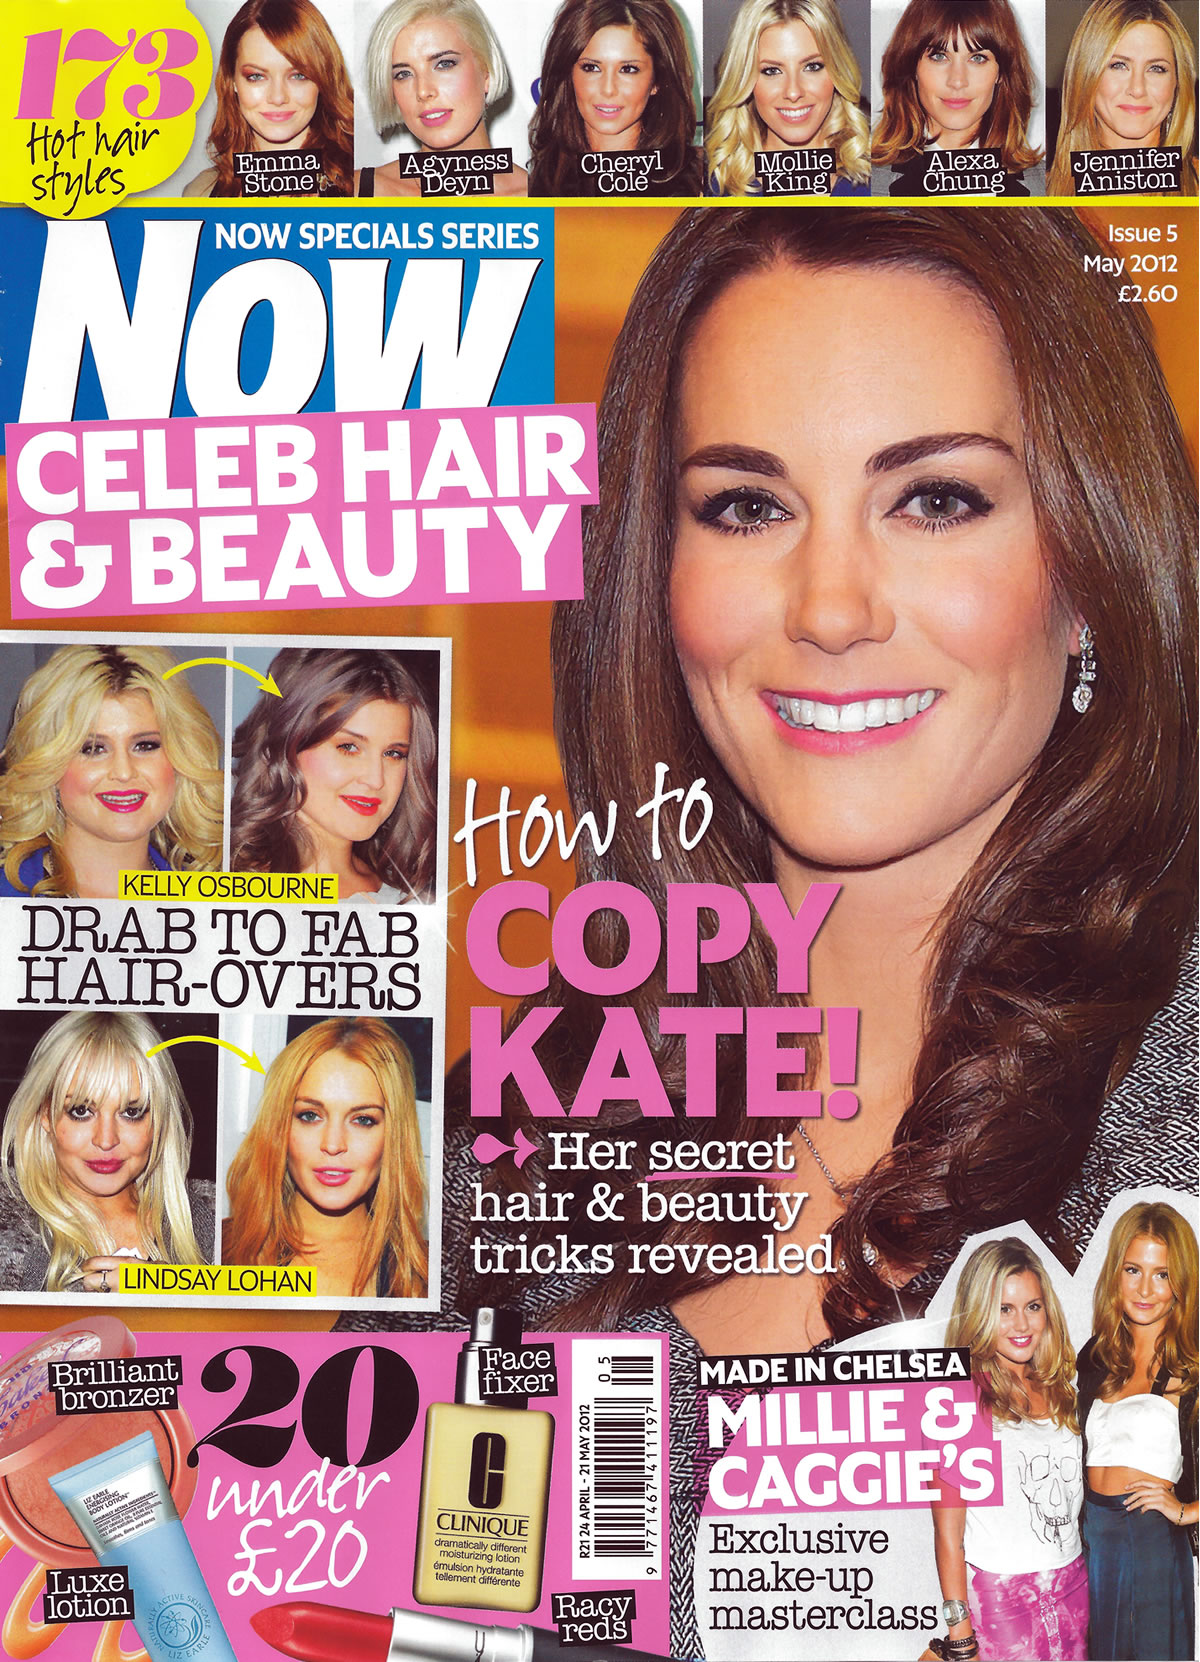 """Mark Glenn Hair Extensions """"Look and Feel Amazing"""" says Now Magazine"""